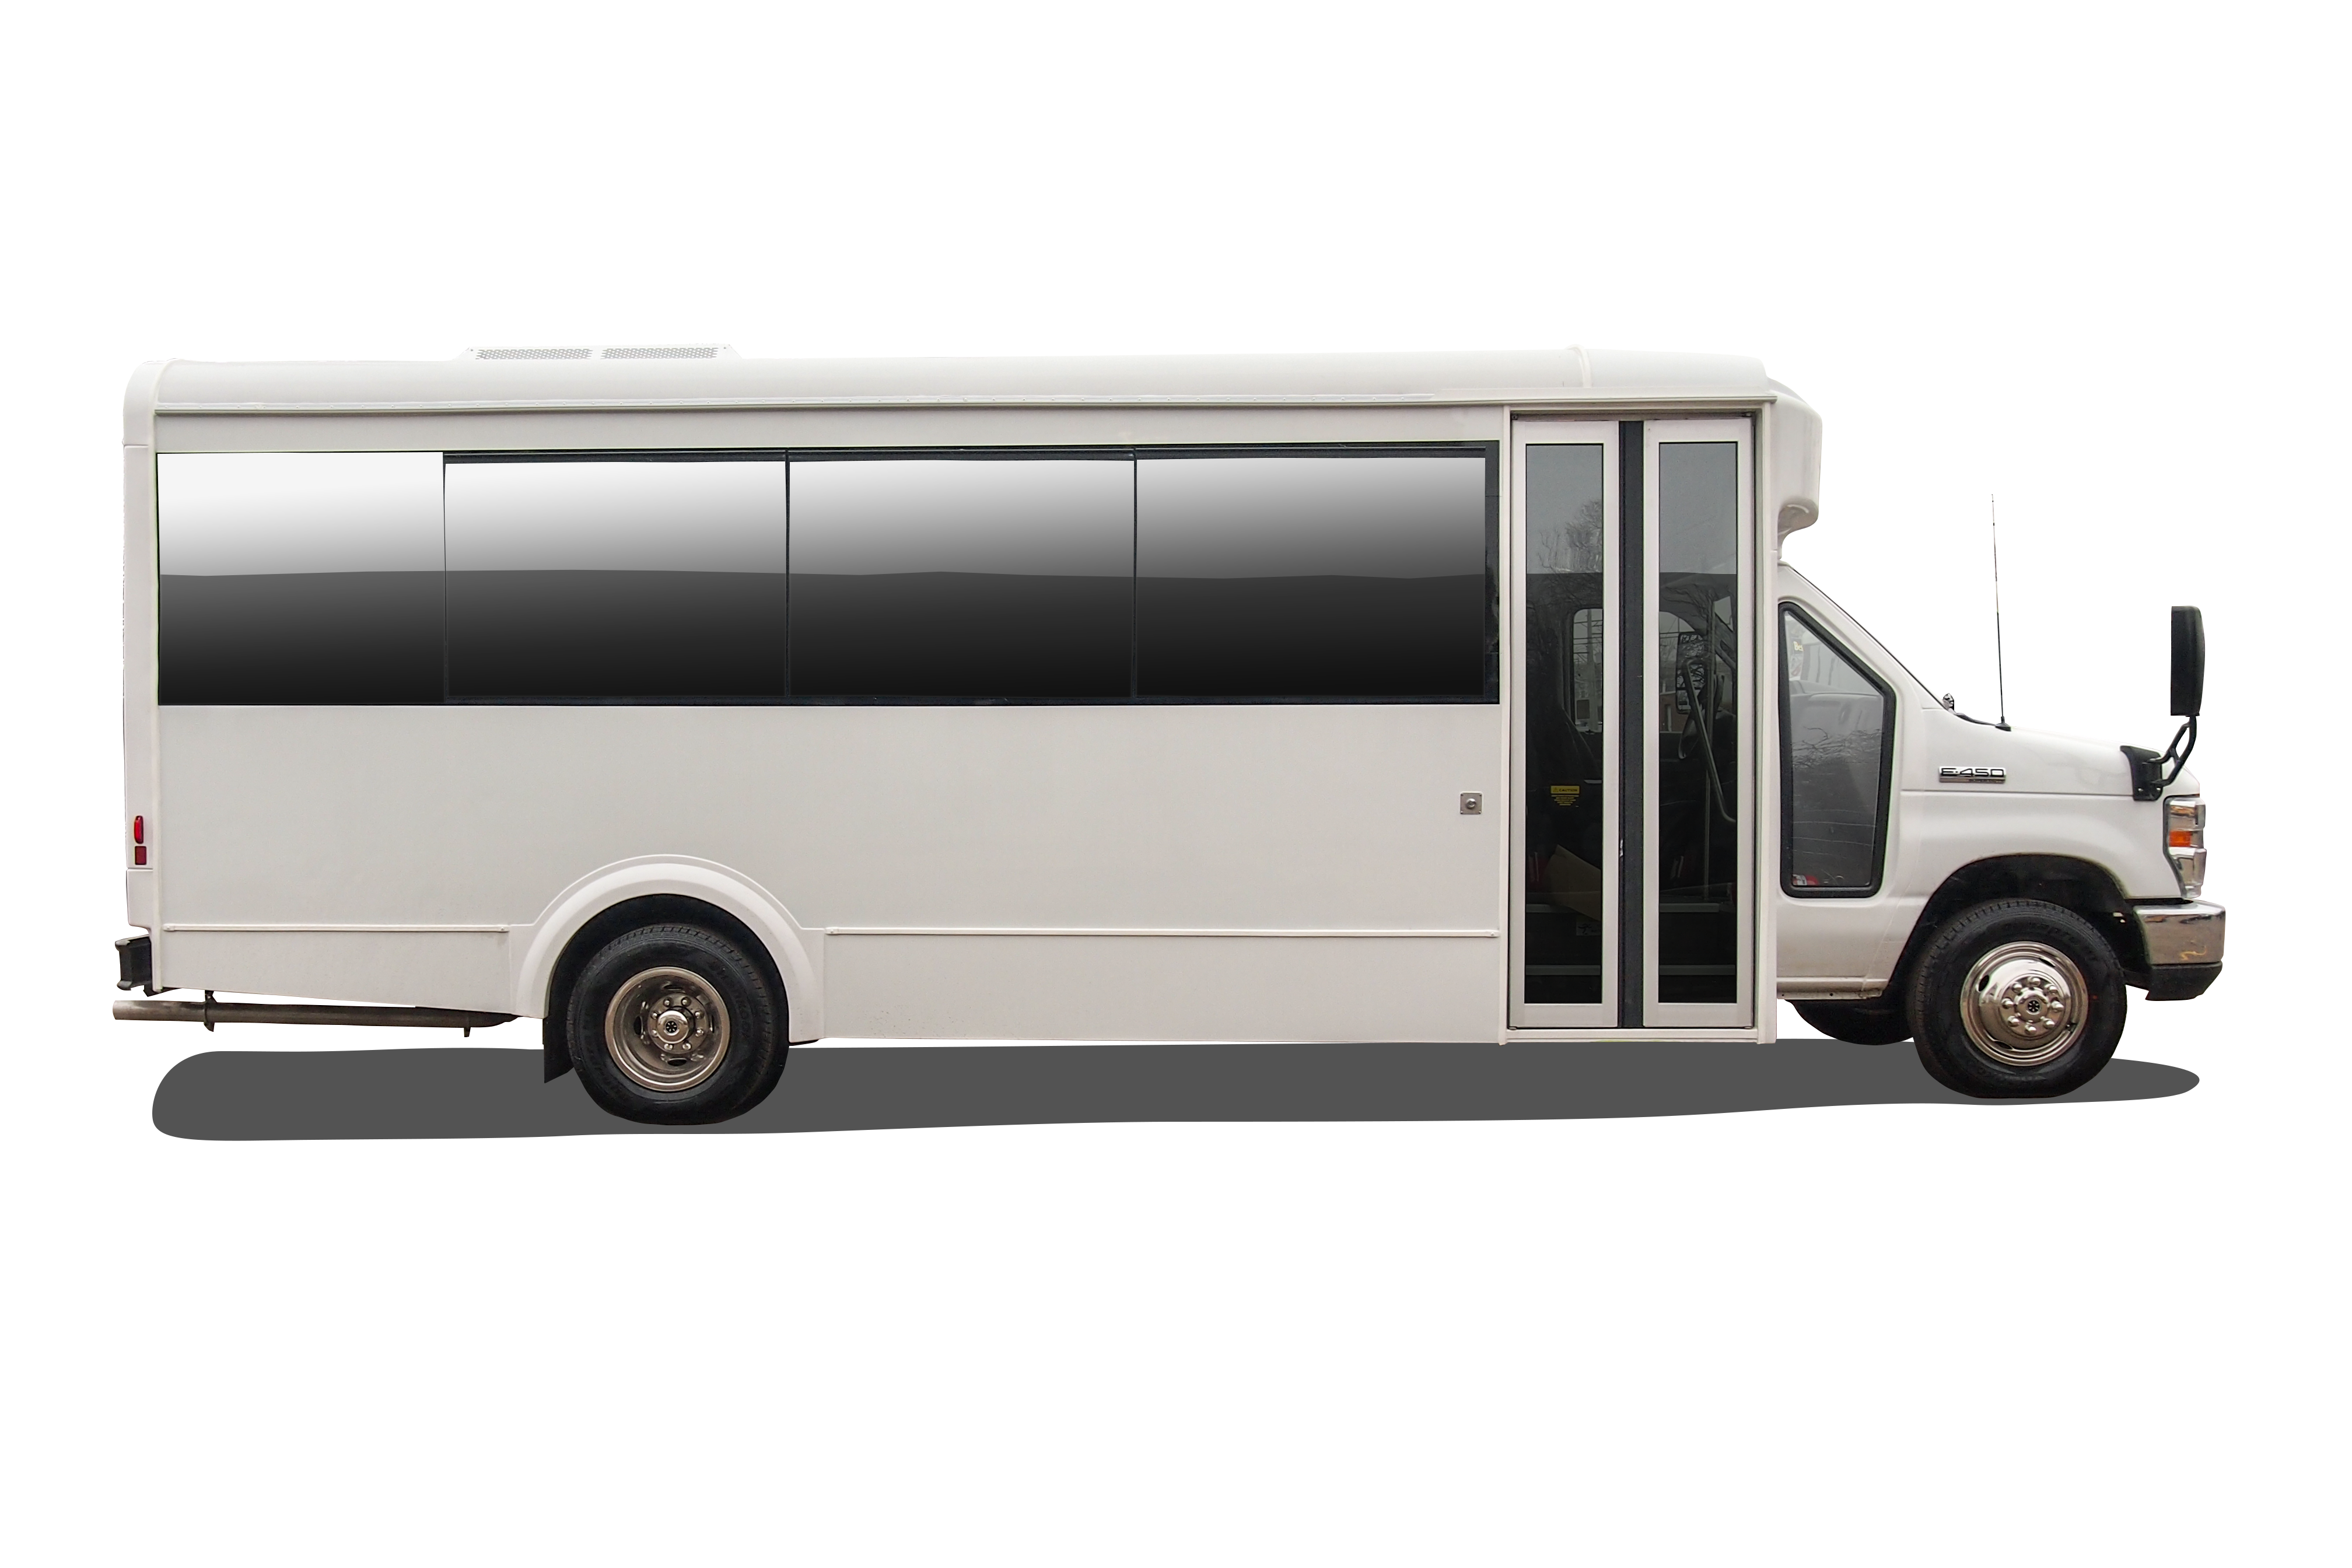 Hotel Shuttle Bus Sales and Lease - Hotel Passenger Van